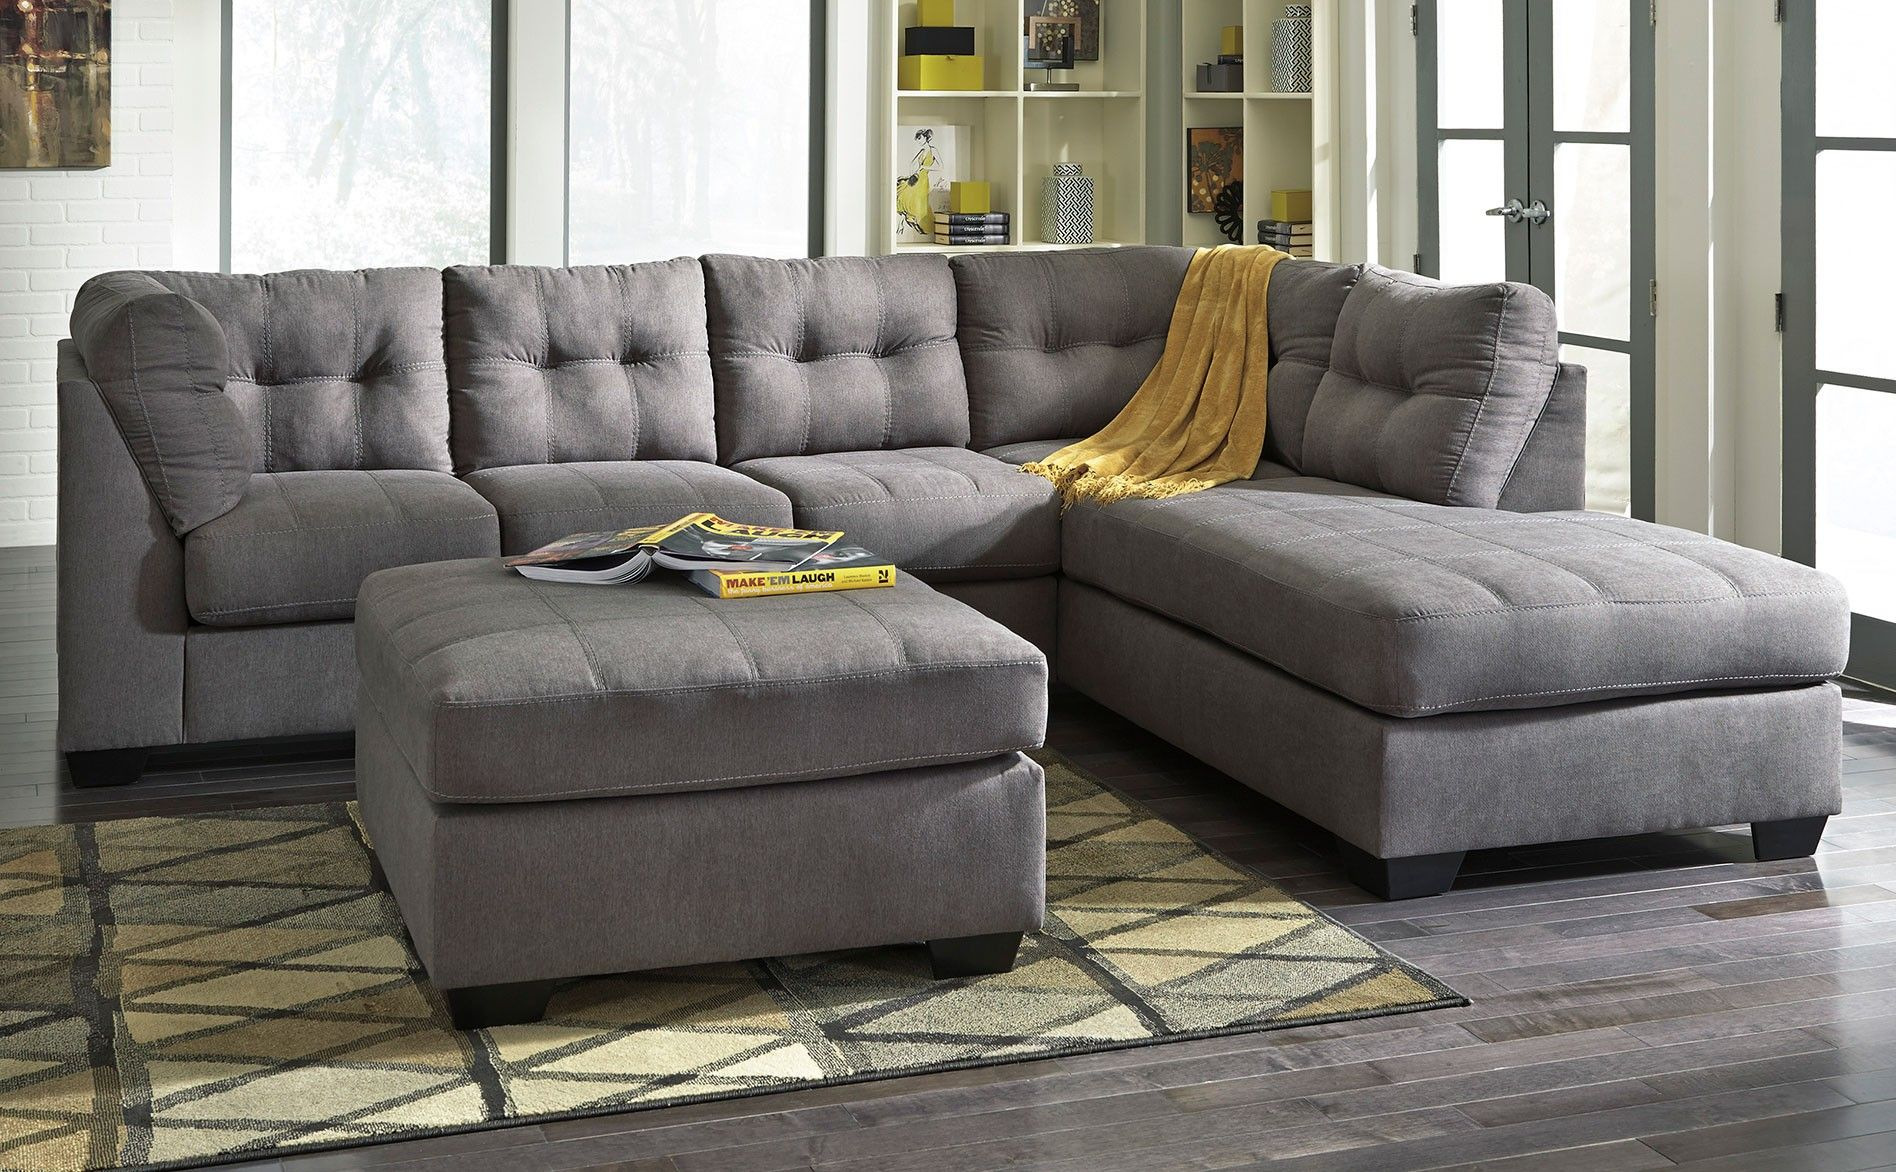 sectional cuddler piece left furniture couch number ashley item park with patola patina products